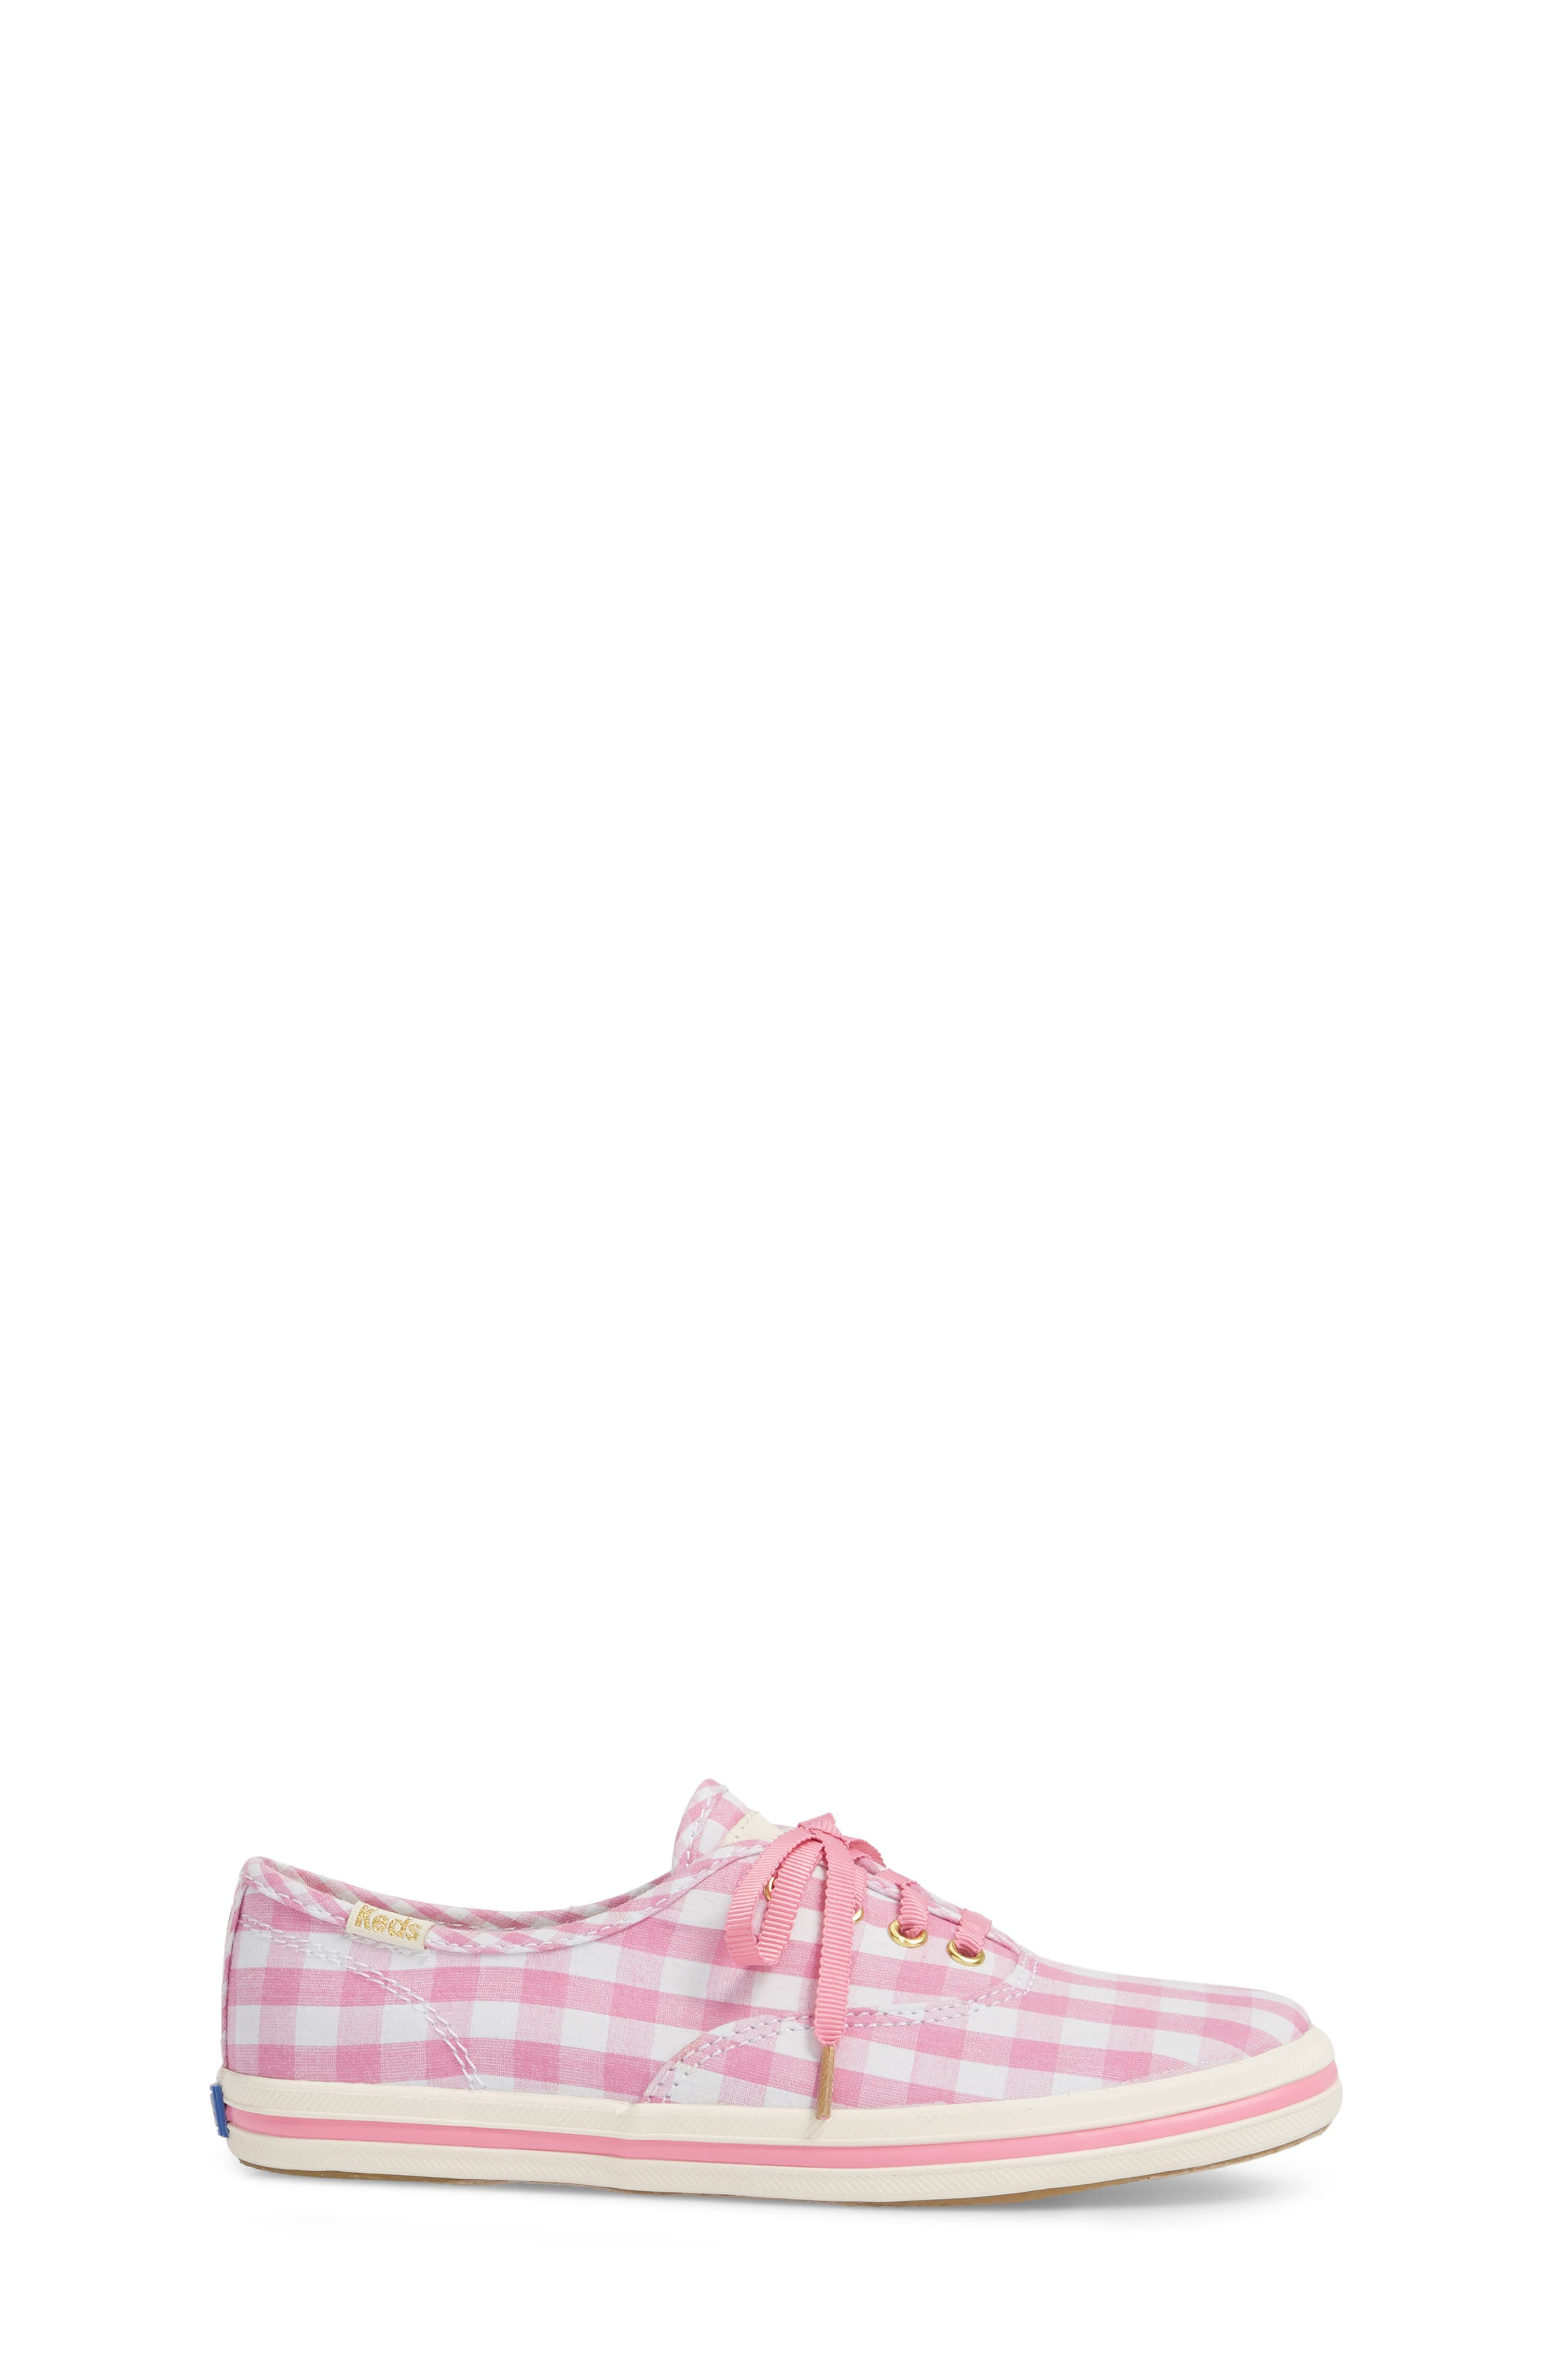 x kate spade new york champion gingham lace-up shoe,                             Alternate thumbnail 3, color,                             650